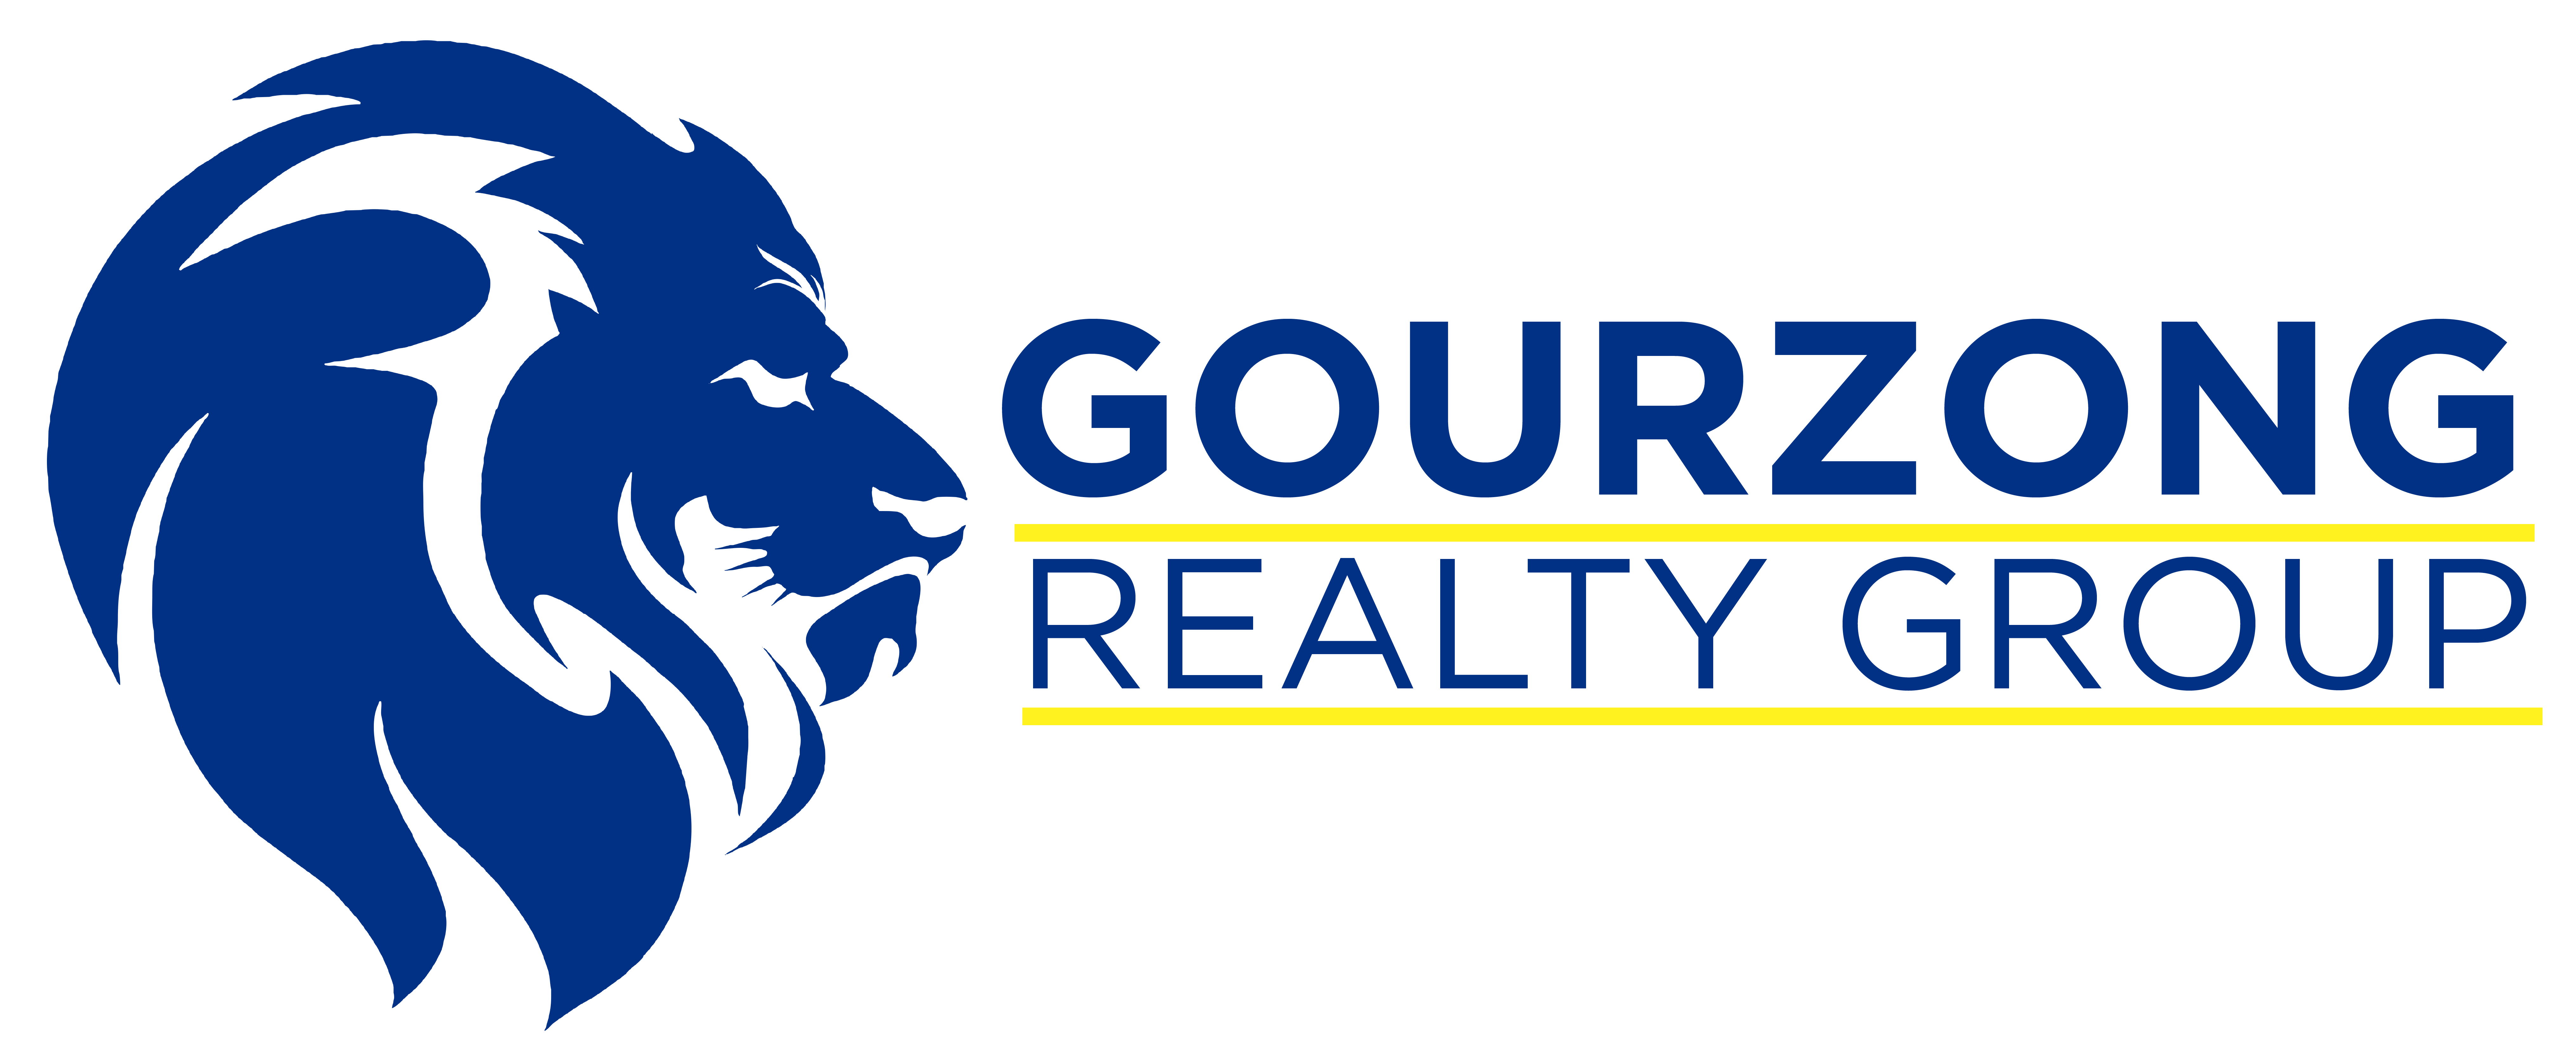 Gourzoung Realty Group